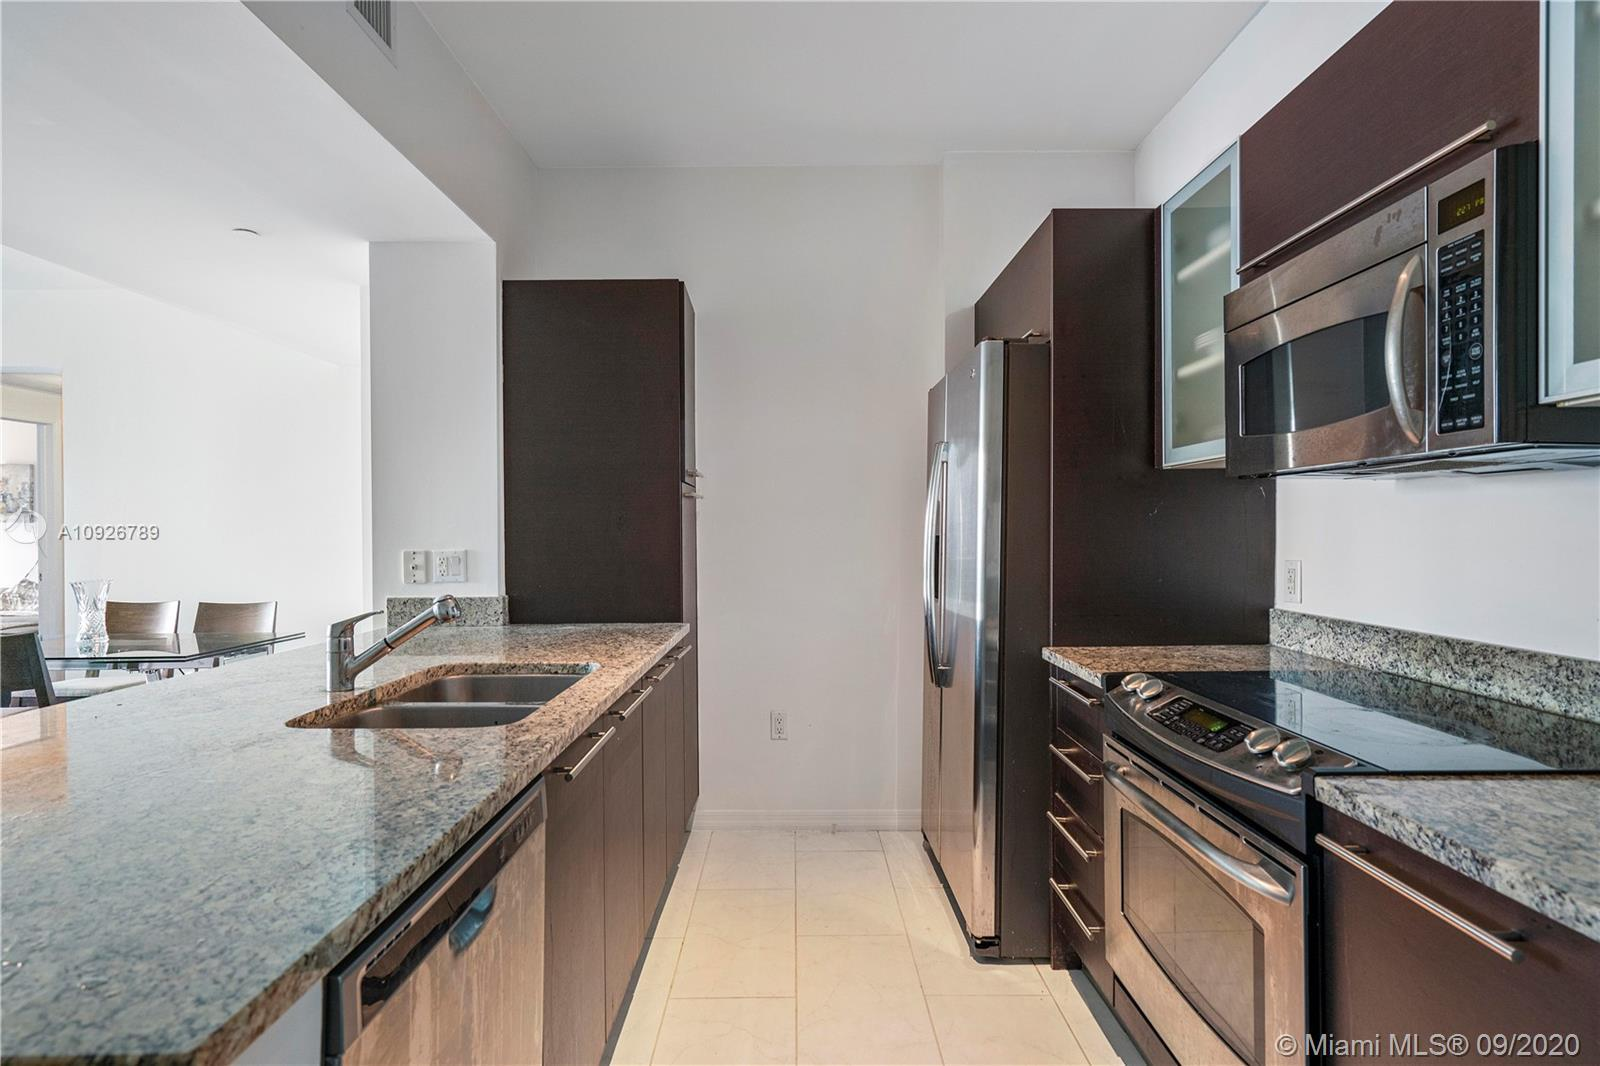 Bright 2 bedroom 2 Bath with open west skyline views with beautiful hardwood floors and bright white